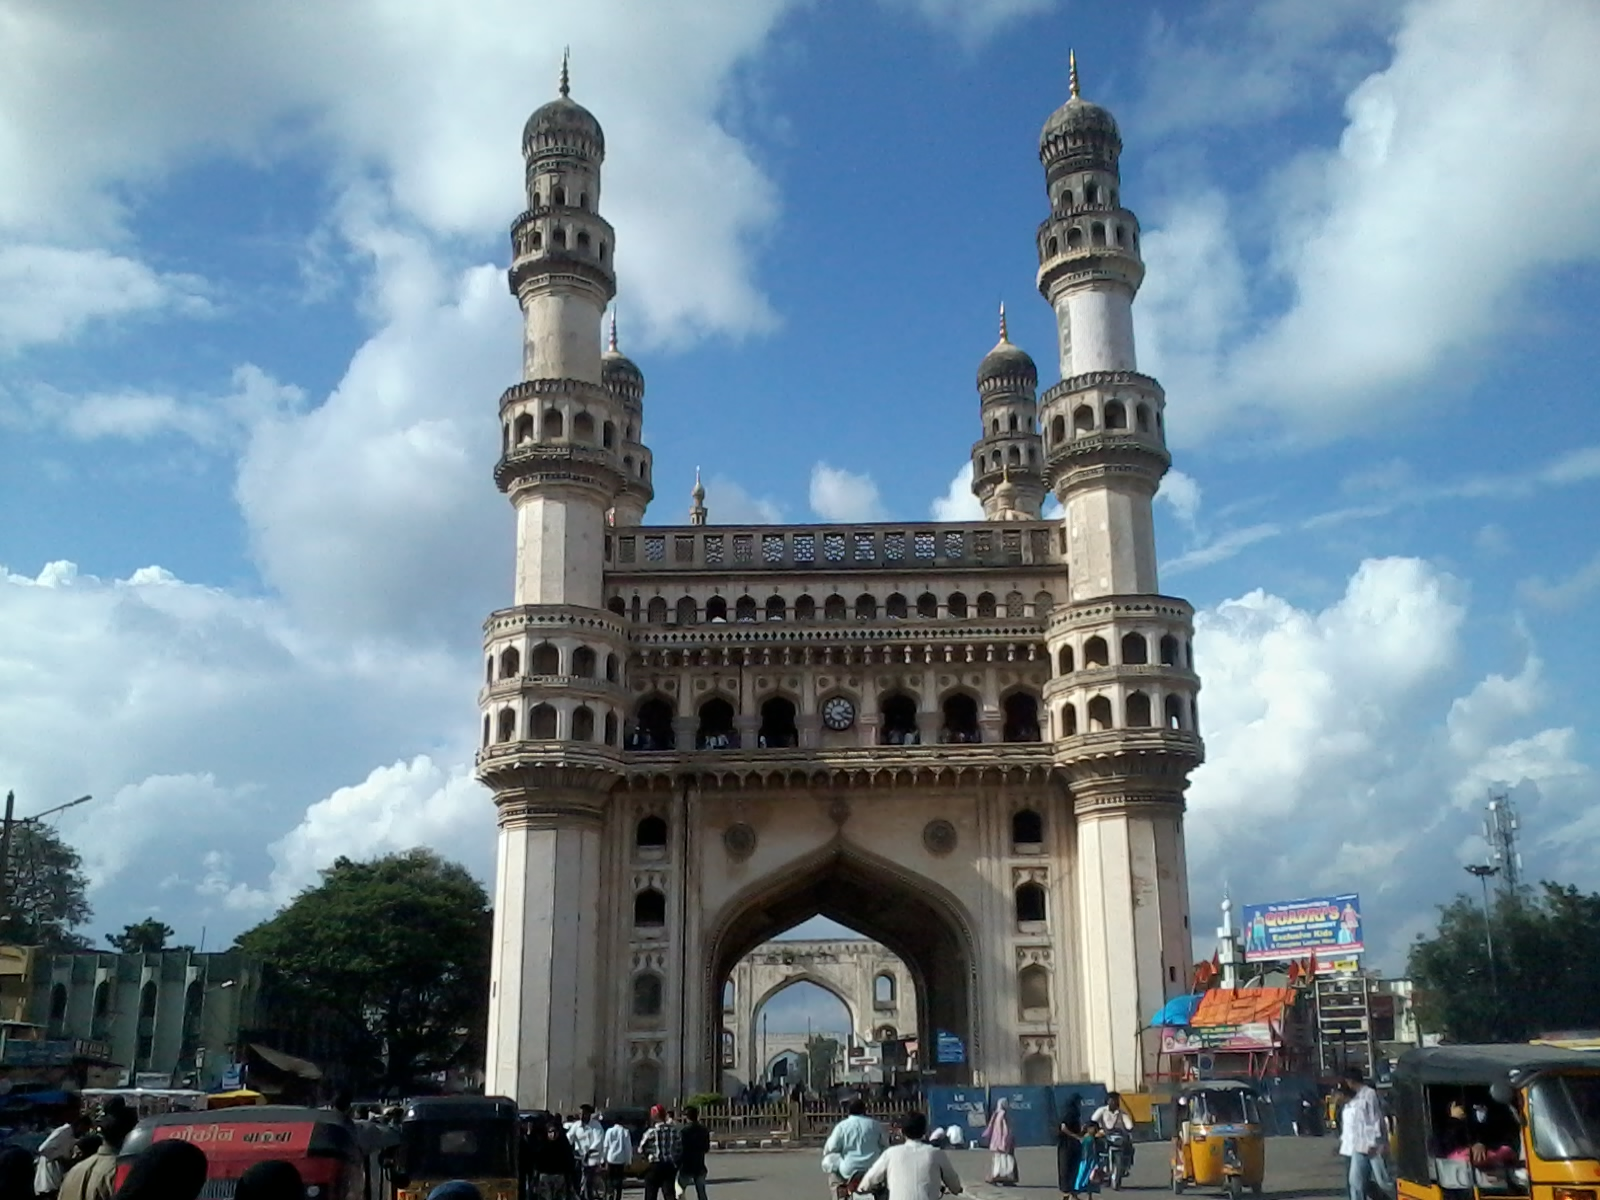 google maps my location with File Charminar 01 on Showthread together with Showthread in addition File Glees Germany Maria Laach Abbey 01 in addition File Pet C5 99 C3 ADn  R C5 AF C5 BEov C3 BD sad  r C5 AF C5 BEe in addition Showthread.